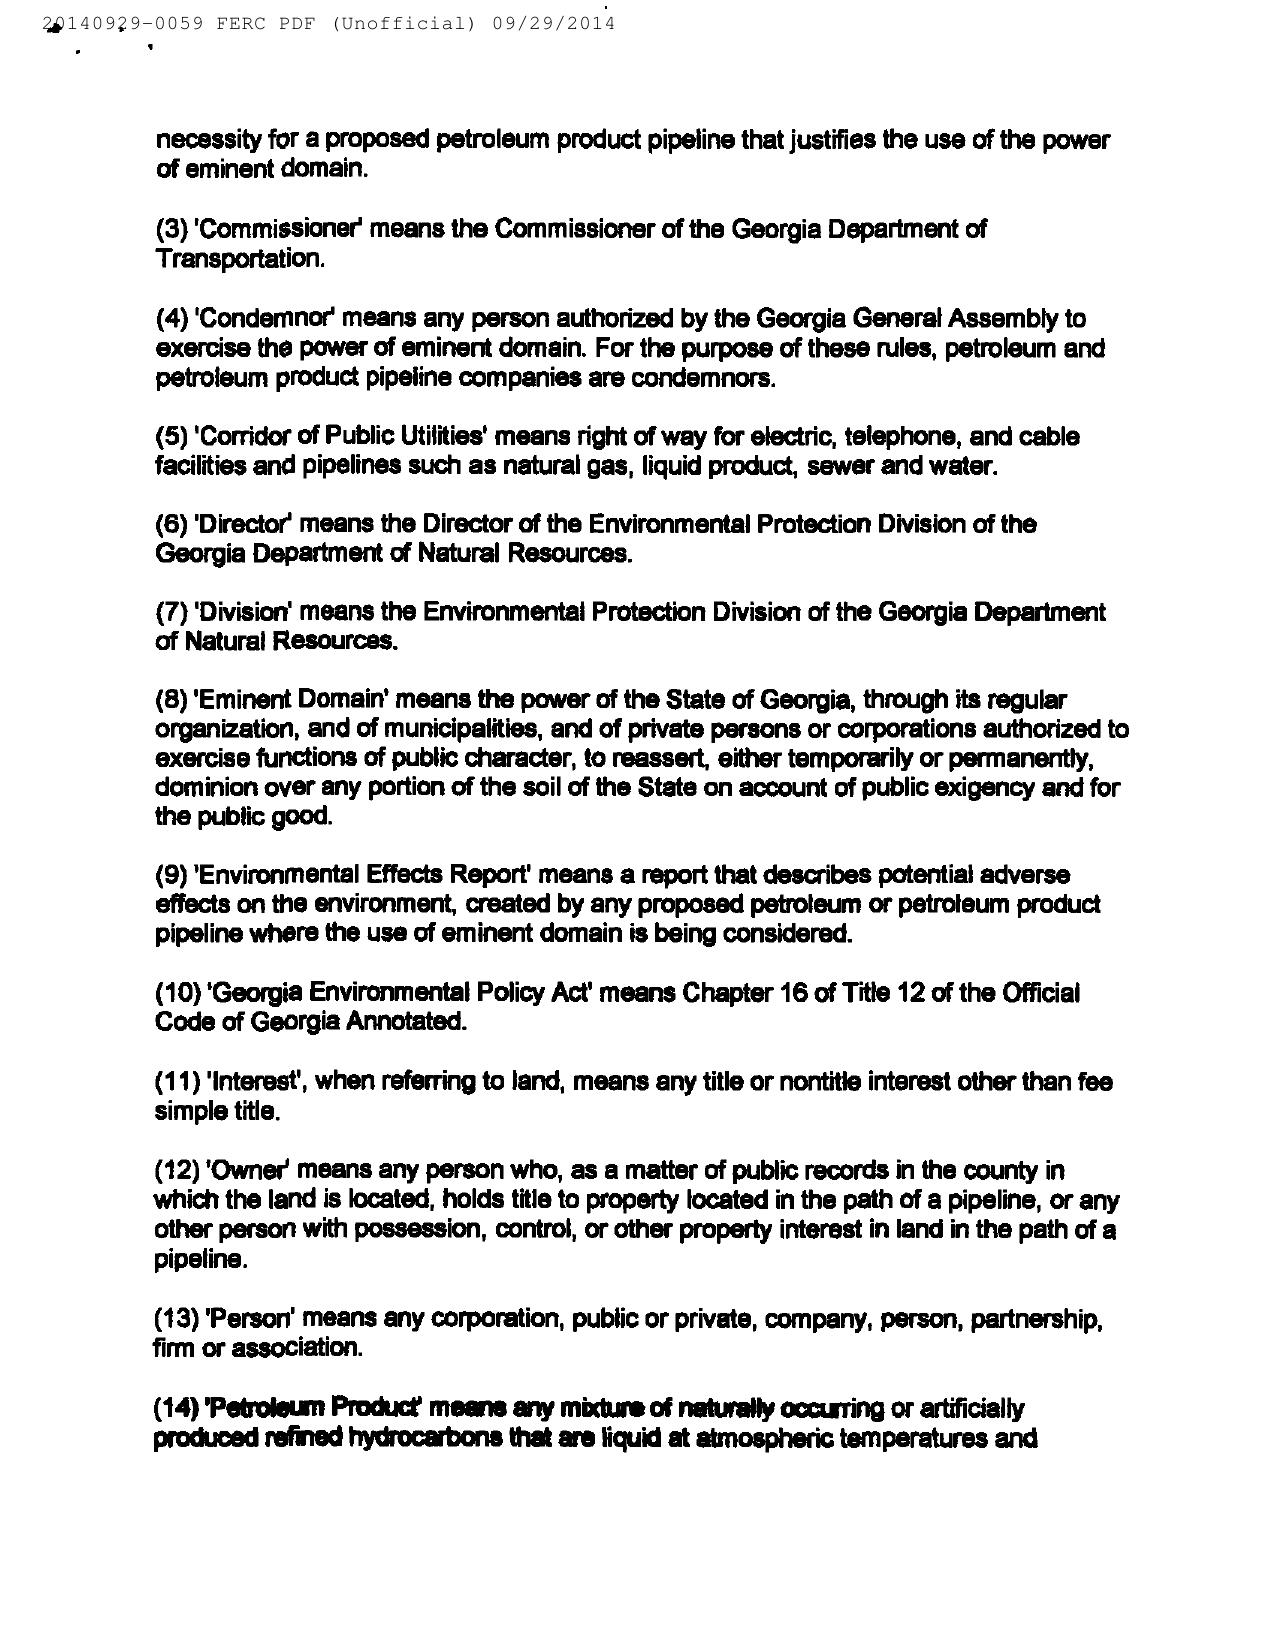 1280x1650 H: GA-EPD Petroleum Pipeline Eminent Domain Permit Procedures (2 of 6), in Resurvey all the properties, by Bill Kendall, for SpectraBusters.org, 29 September 2014